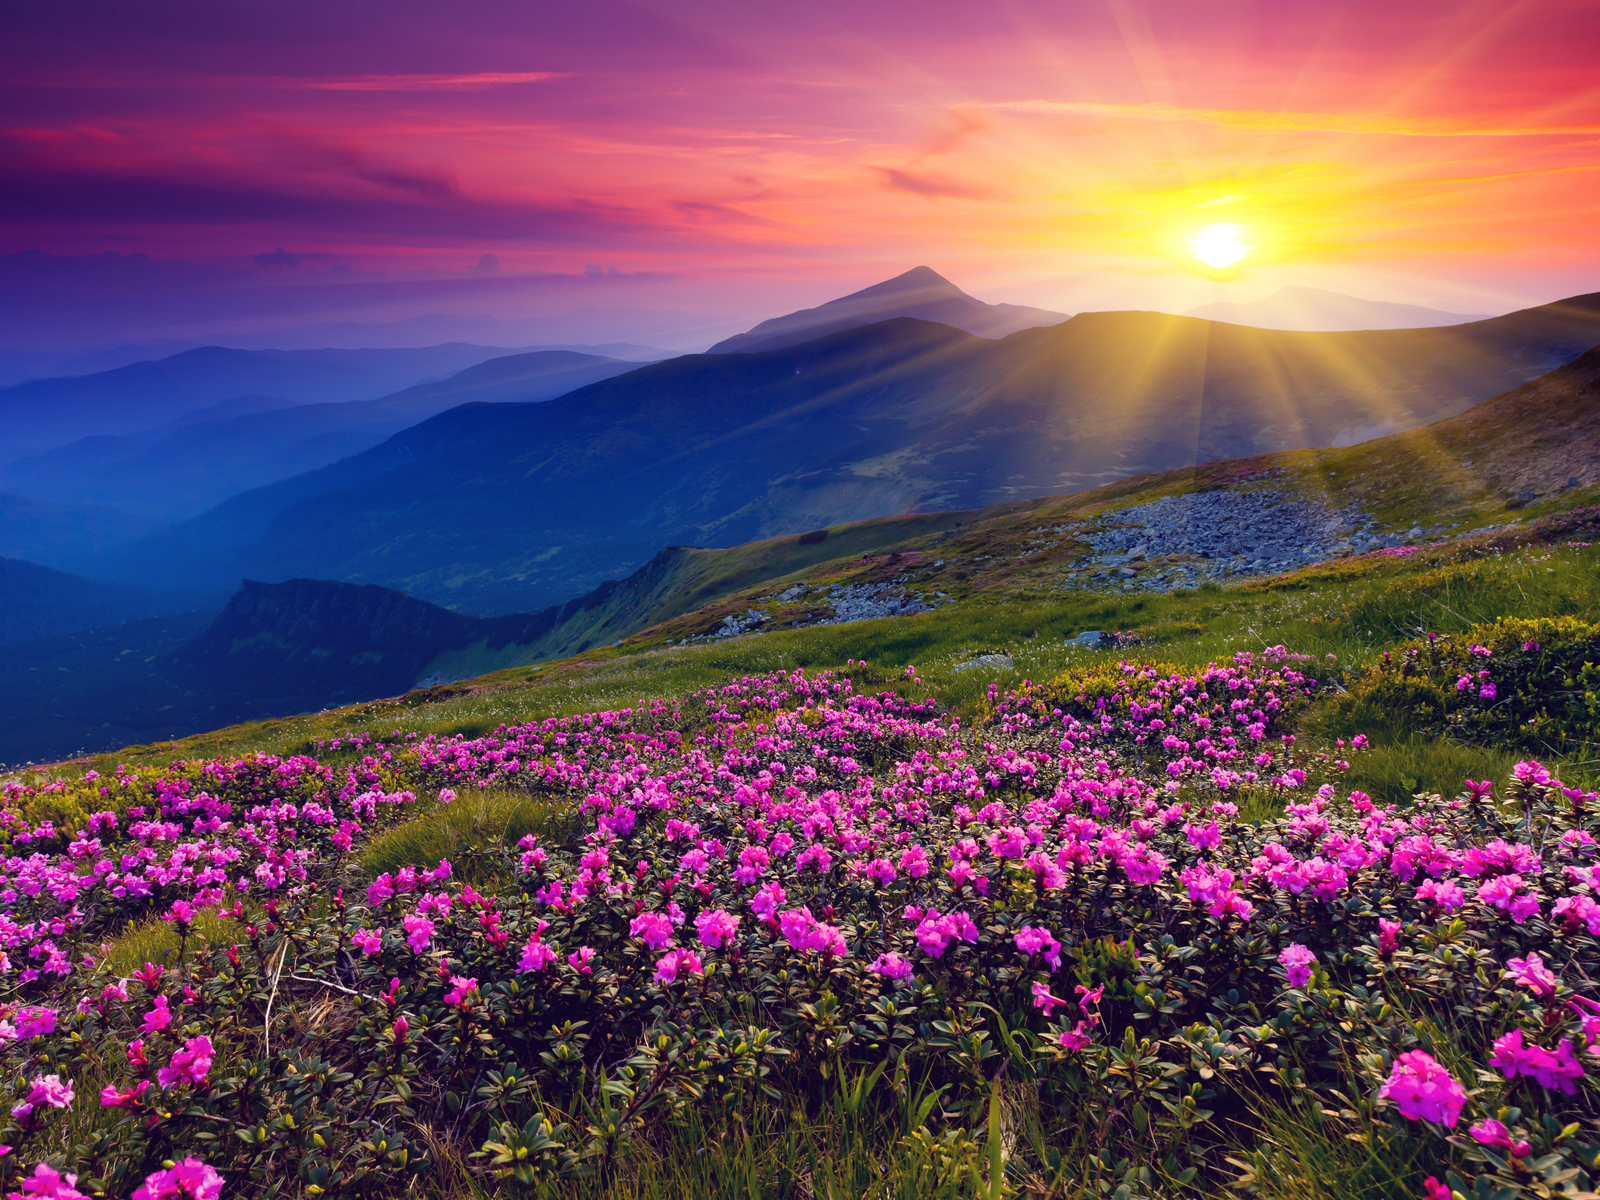 http://4.bp.blogspot.com/-52nmz9_ZimI/UFyAHX2F4ZI/AAAAAAAAEtA/sY_kTzAjsMs/s1600/Meadows-Purple-Wild-Flowers-Mountains-and-Sunset-HD-Wallpaper--NatureWallBase.Blogspot.Com.jpg